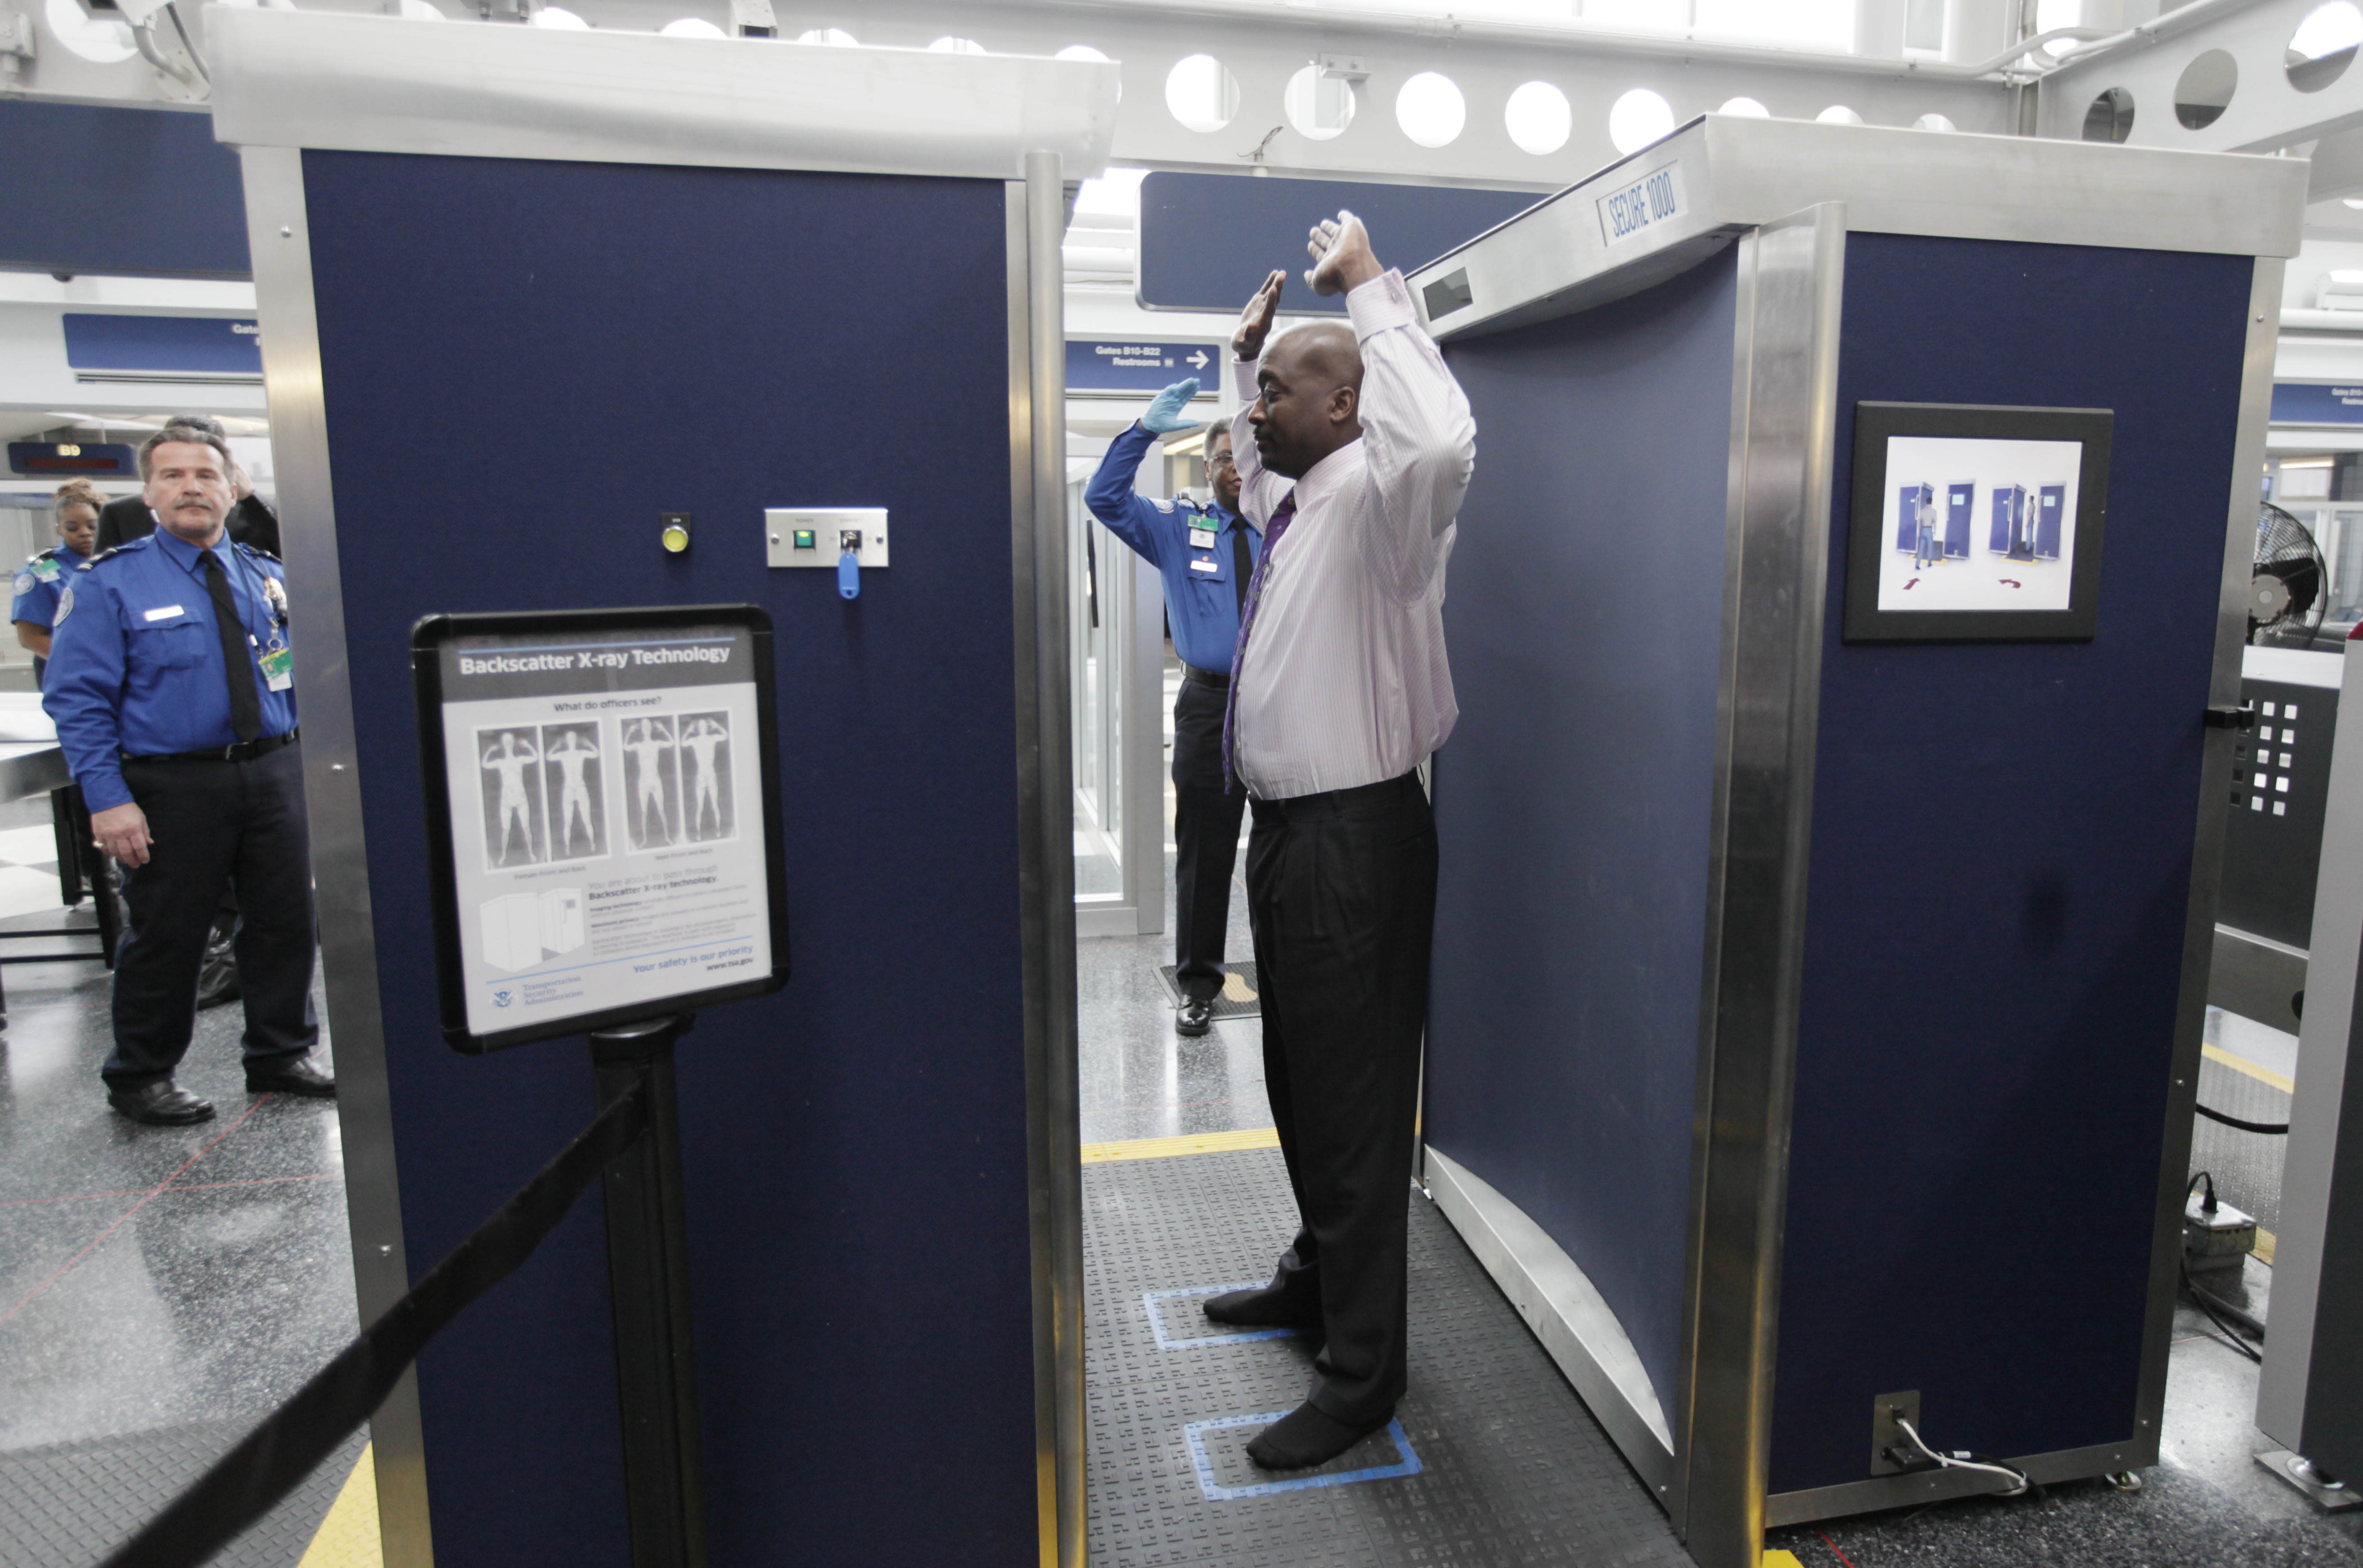 FILE - In this March 15, 2010 file photo, a volunteer passes through the first full body scanner installed at O'Hare International Airport in Chicago. The Transportation Security Administration has been replacing the huge X-ray machines with smaller, millimeter wave body scanners at seven major U.S. airports. The new technology produces a cartoon-like outline rather than naked images of passengers produced by using X-rays. (AP Photo/M. Spencer Green, File)